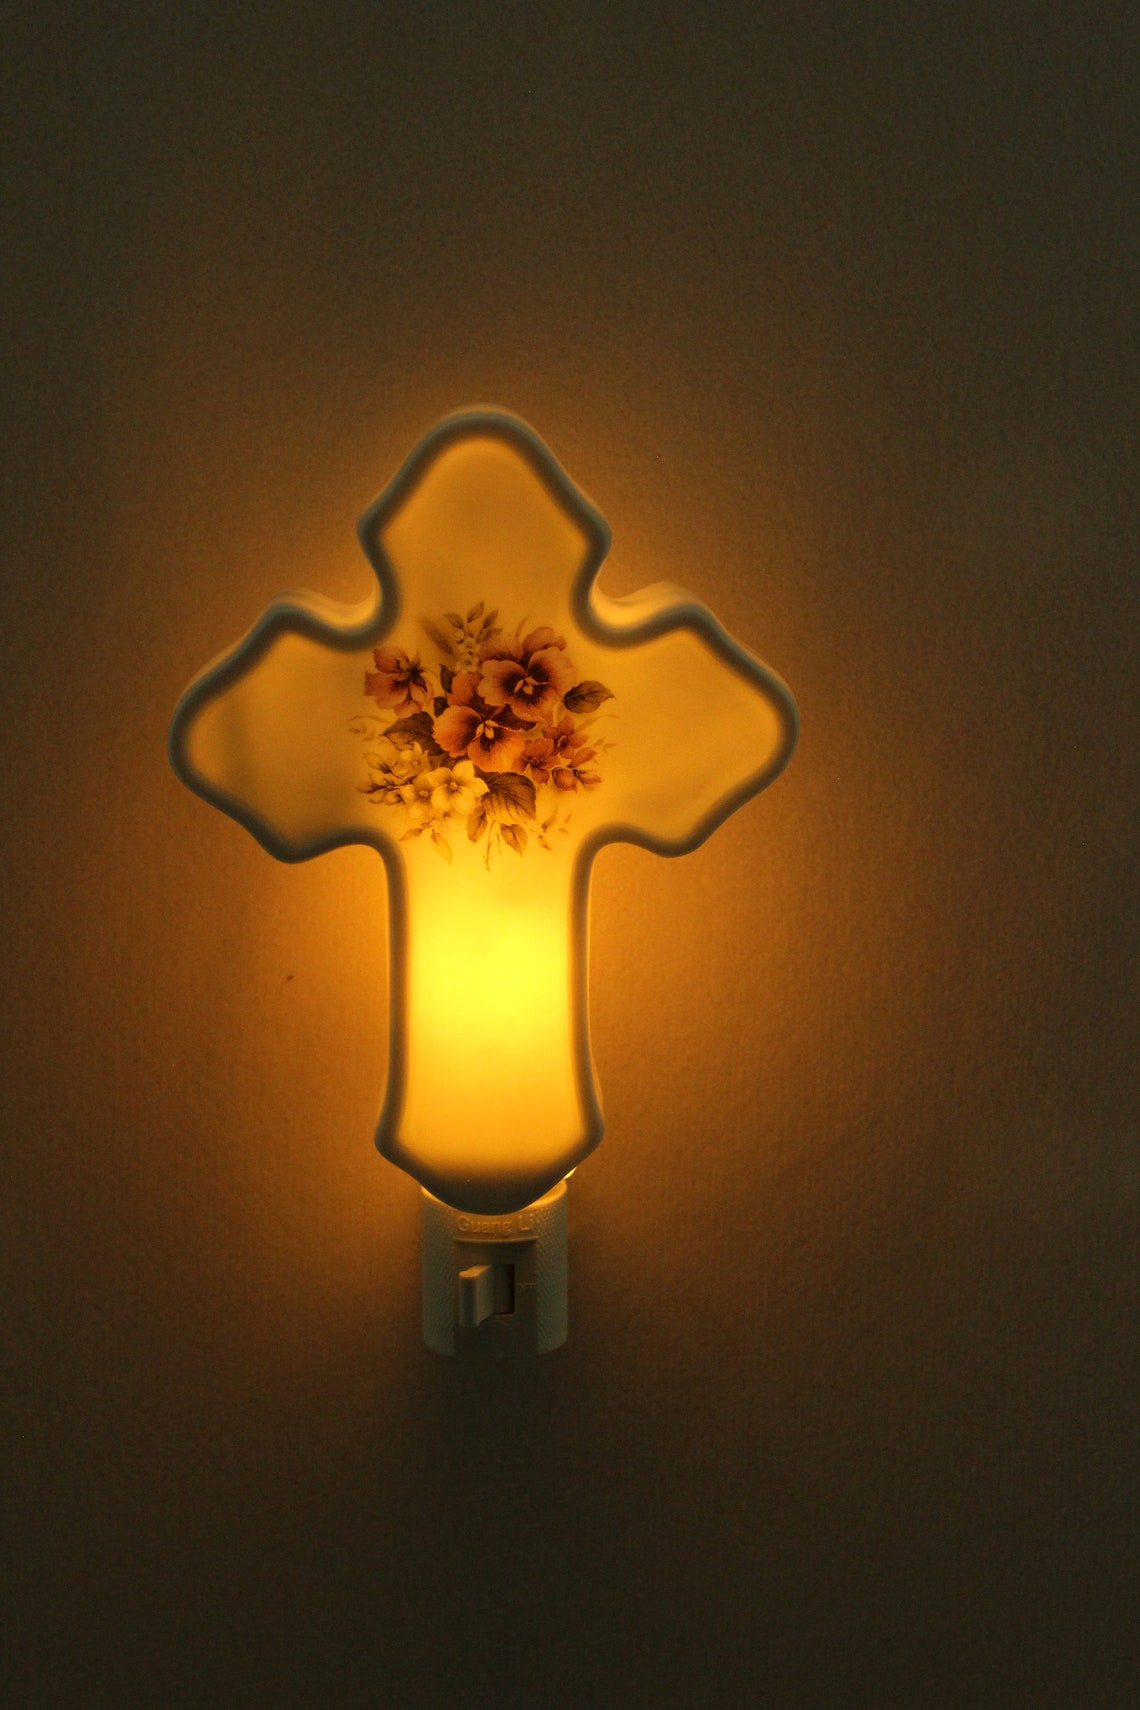 Purple Pansy Memorial Cross Night Light, Remembrance of Loved One, Porcelain Night Light, Memorial Gift - Eclairage